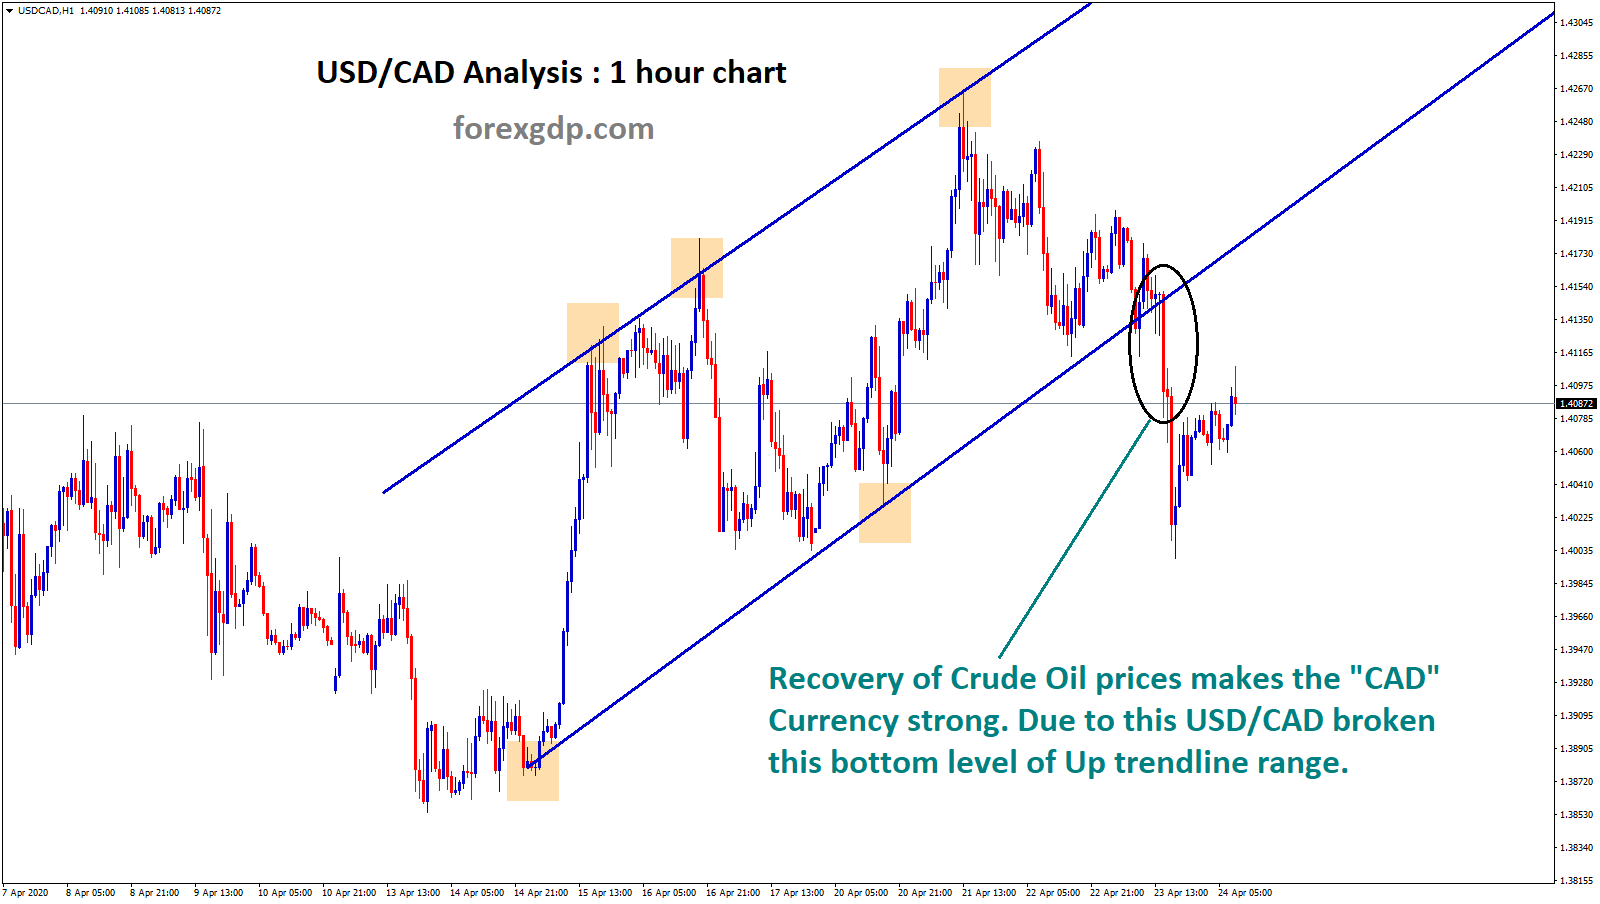 usdcad correlation with Crude Oil - breakout occurs